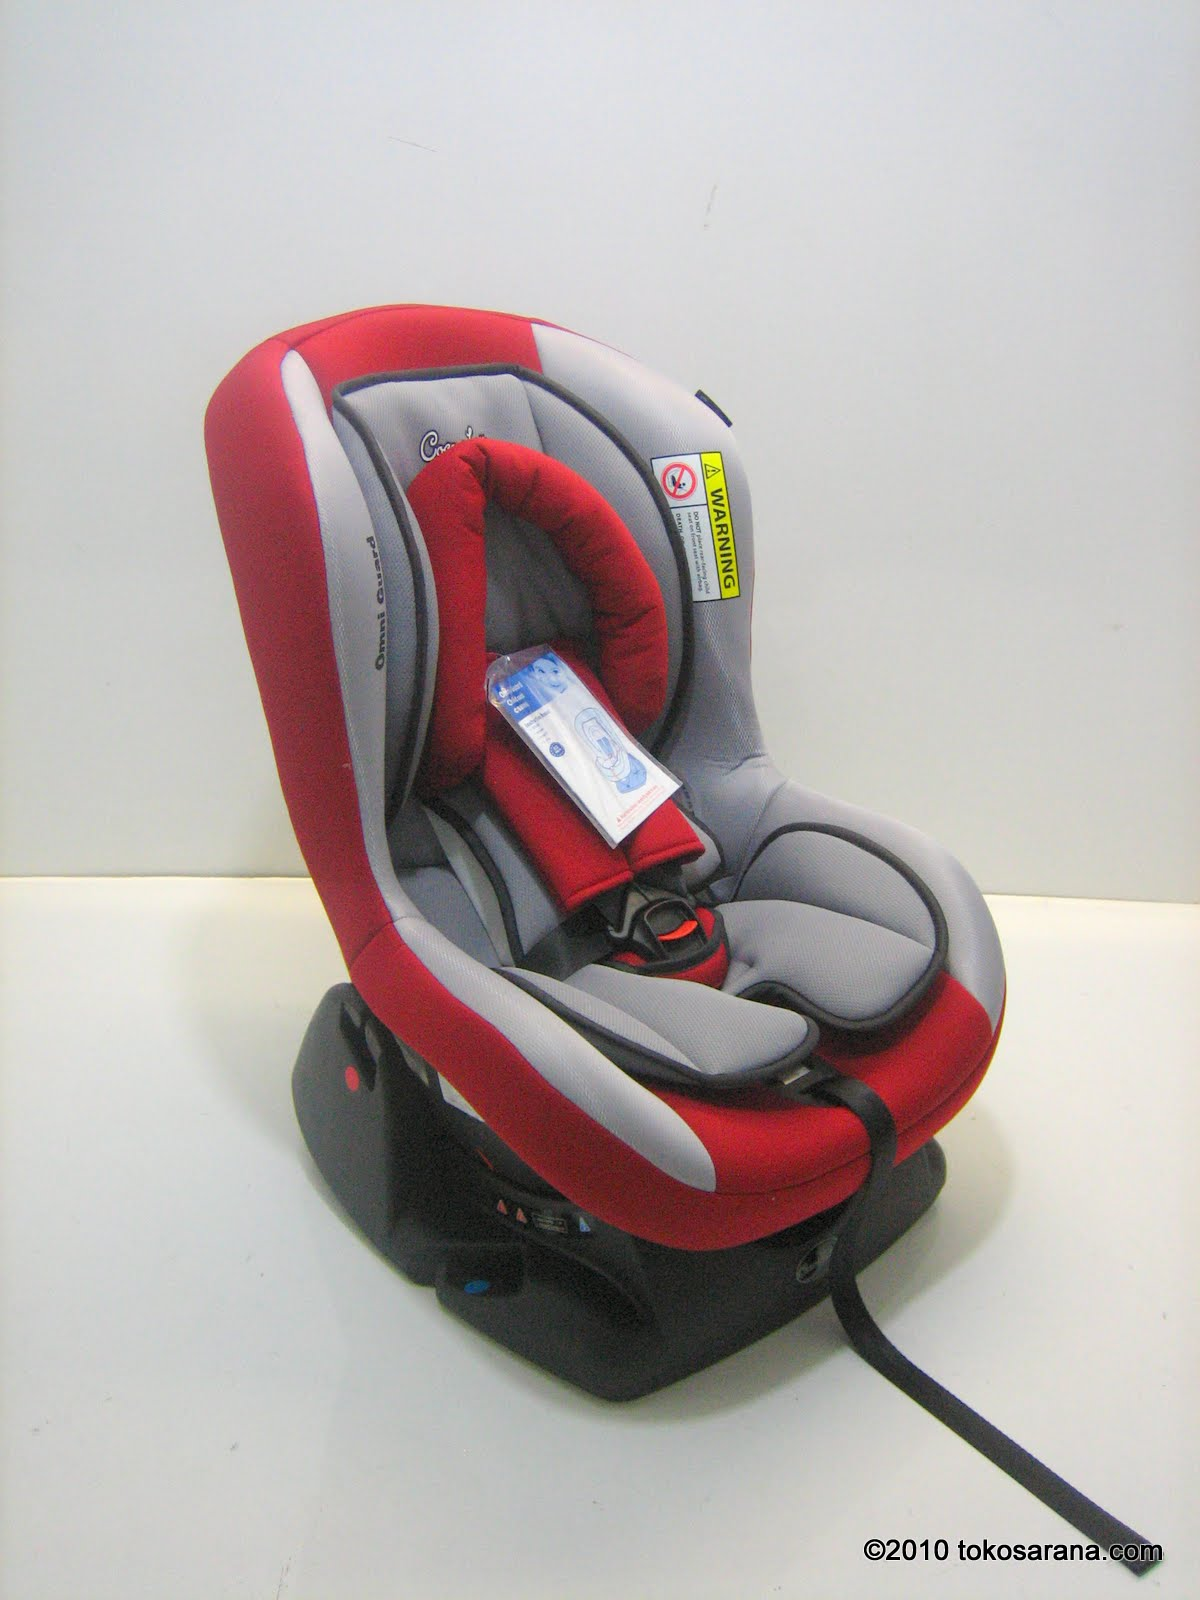 Tokomagenta A Showcase Of Products Baby Car Seat